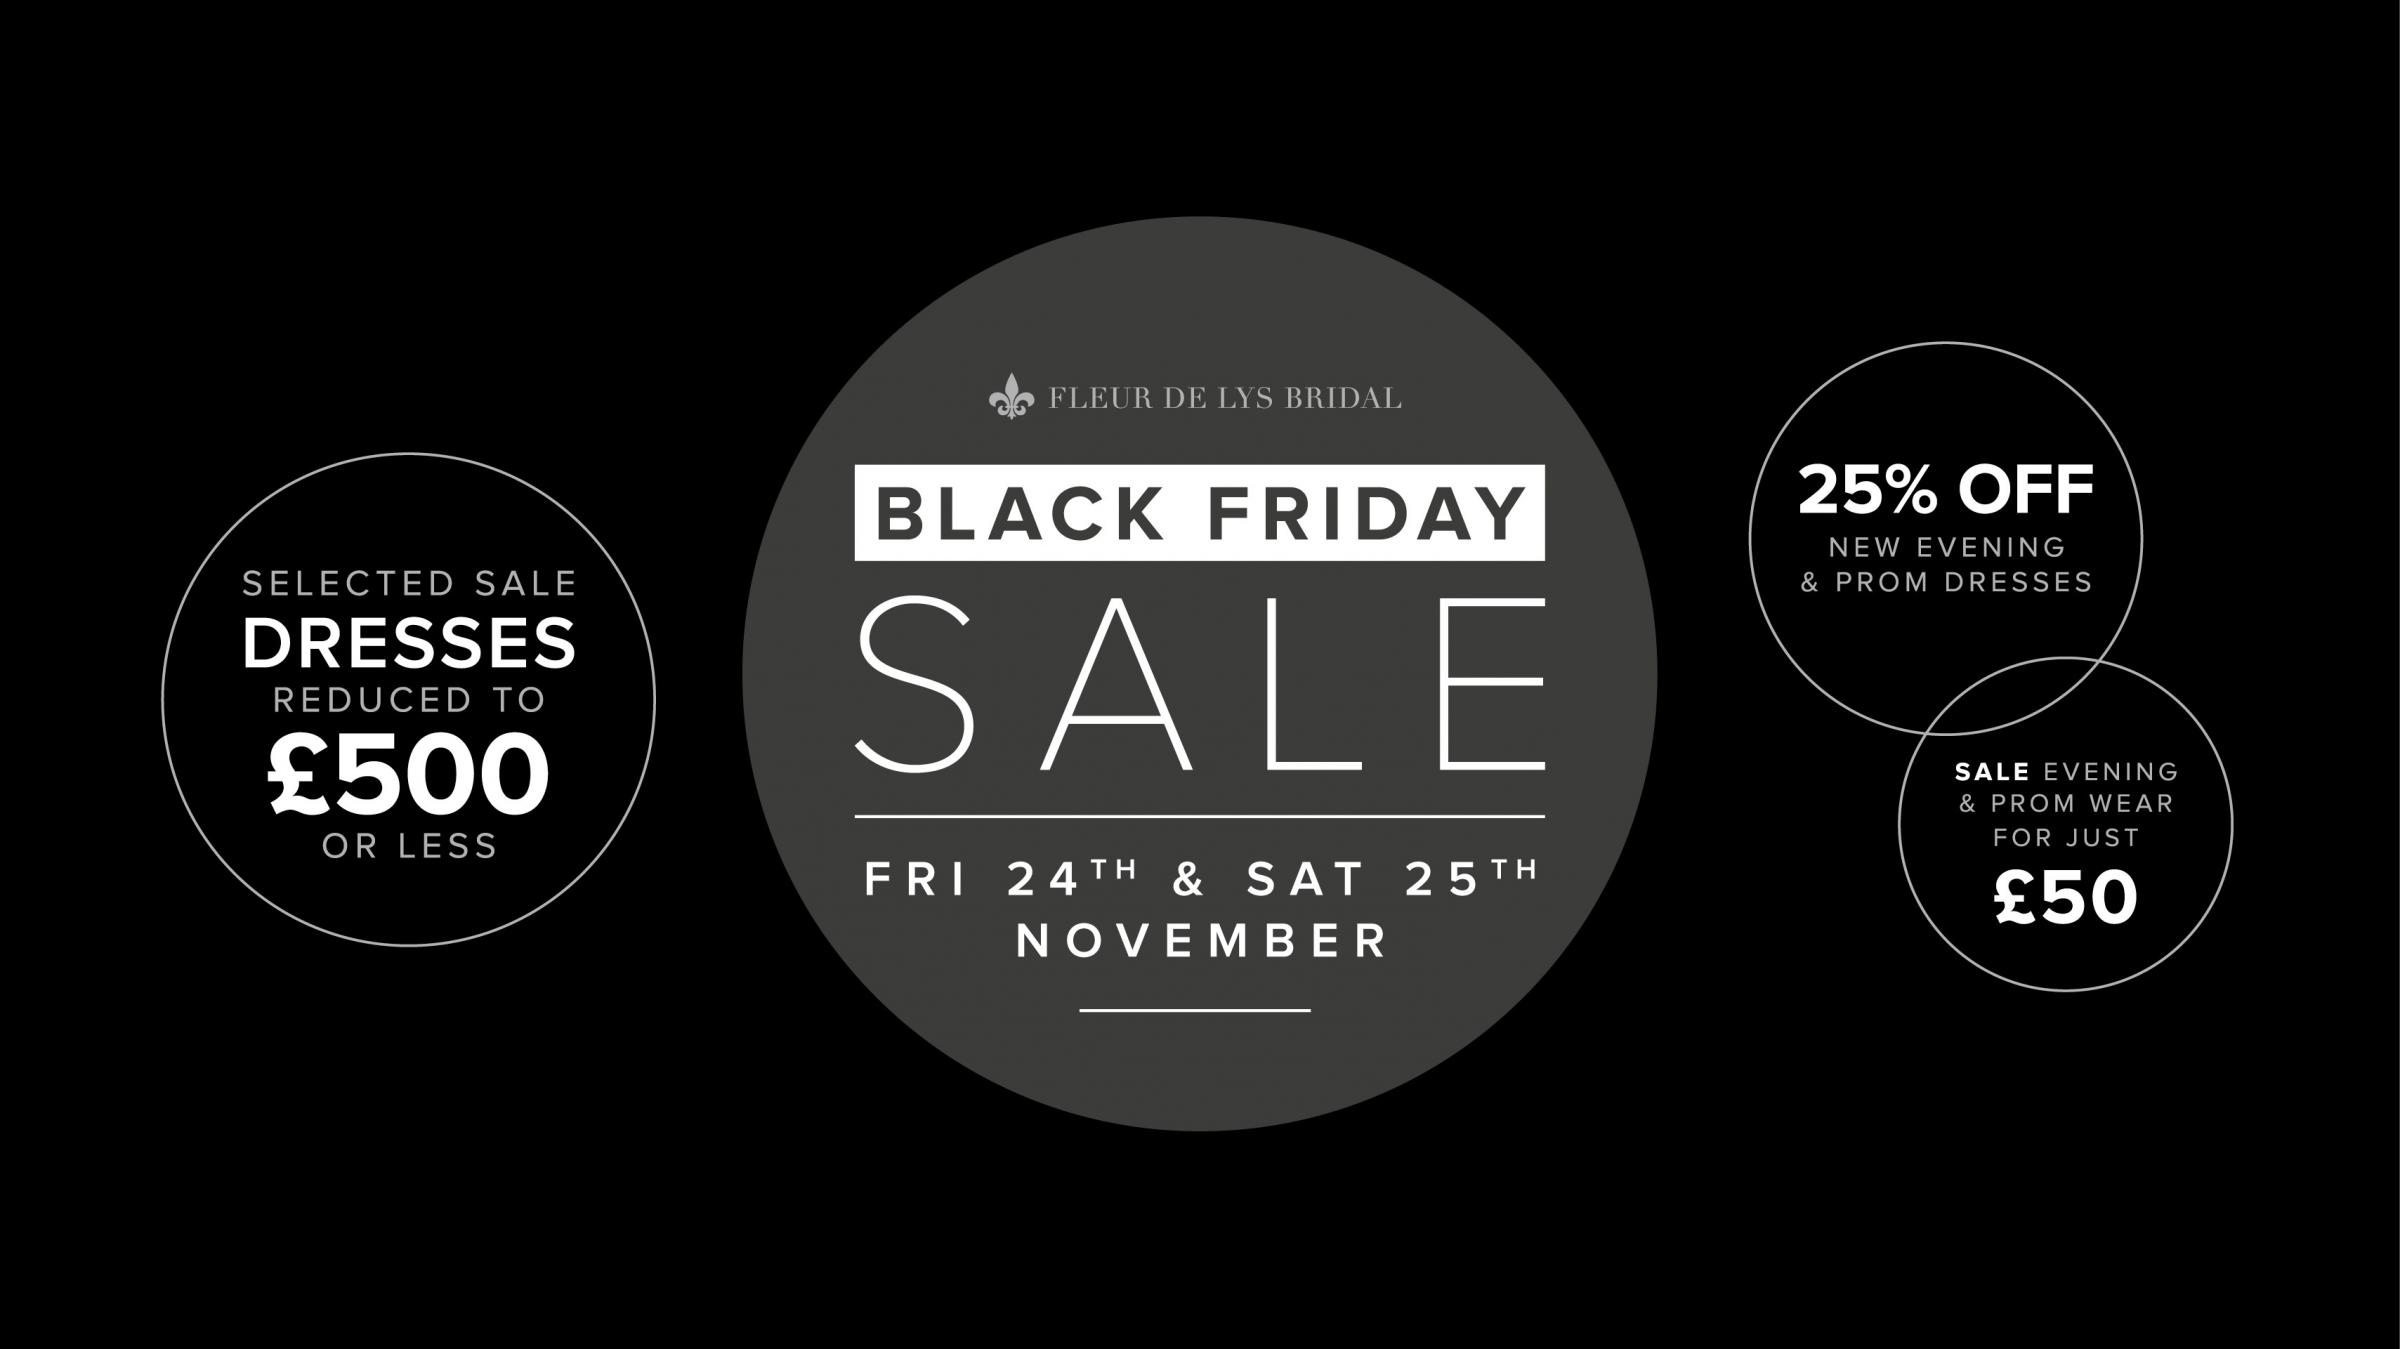 Unmissable bridal, evening gown and prom dress savings this Black Friday!